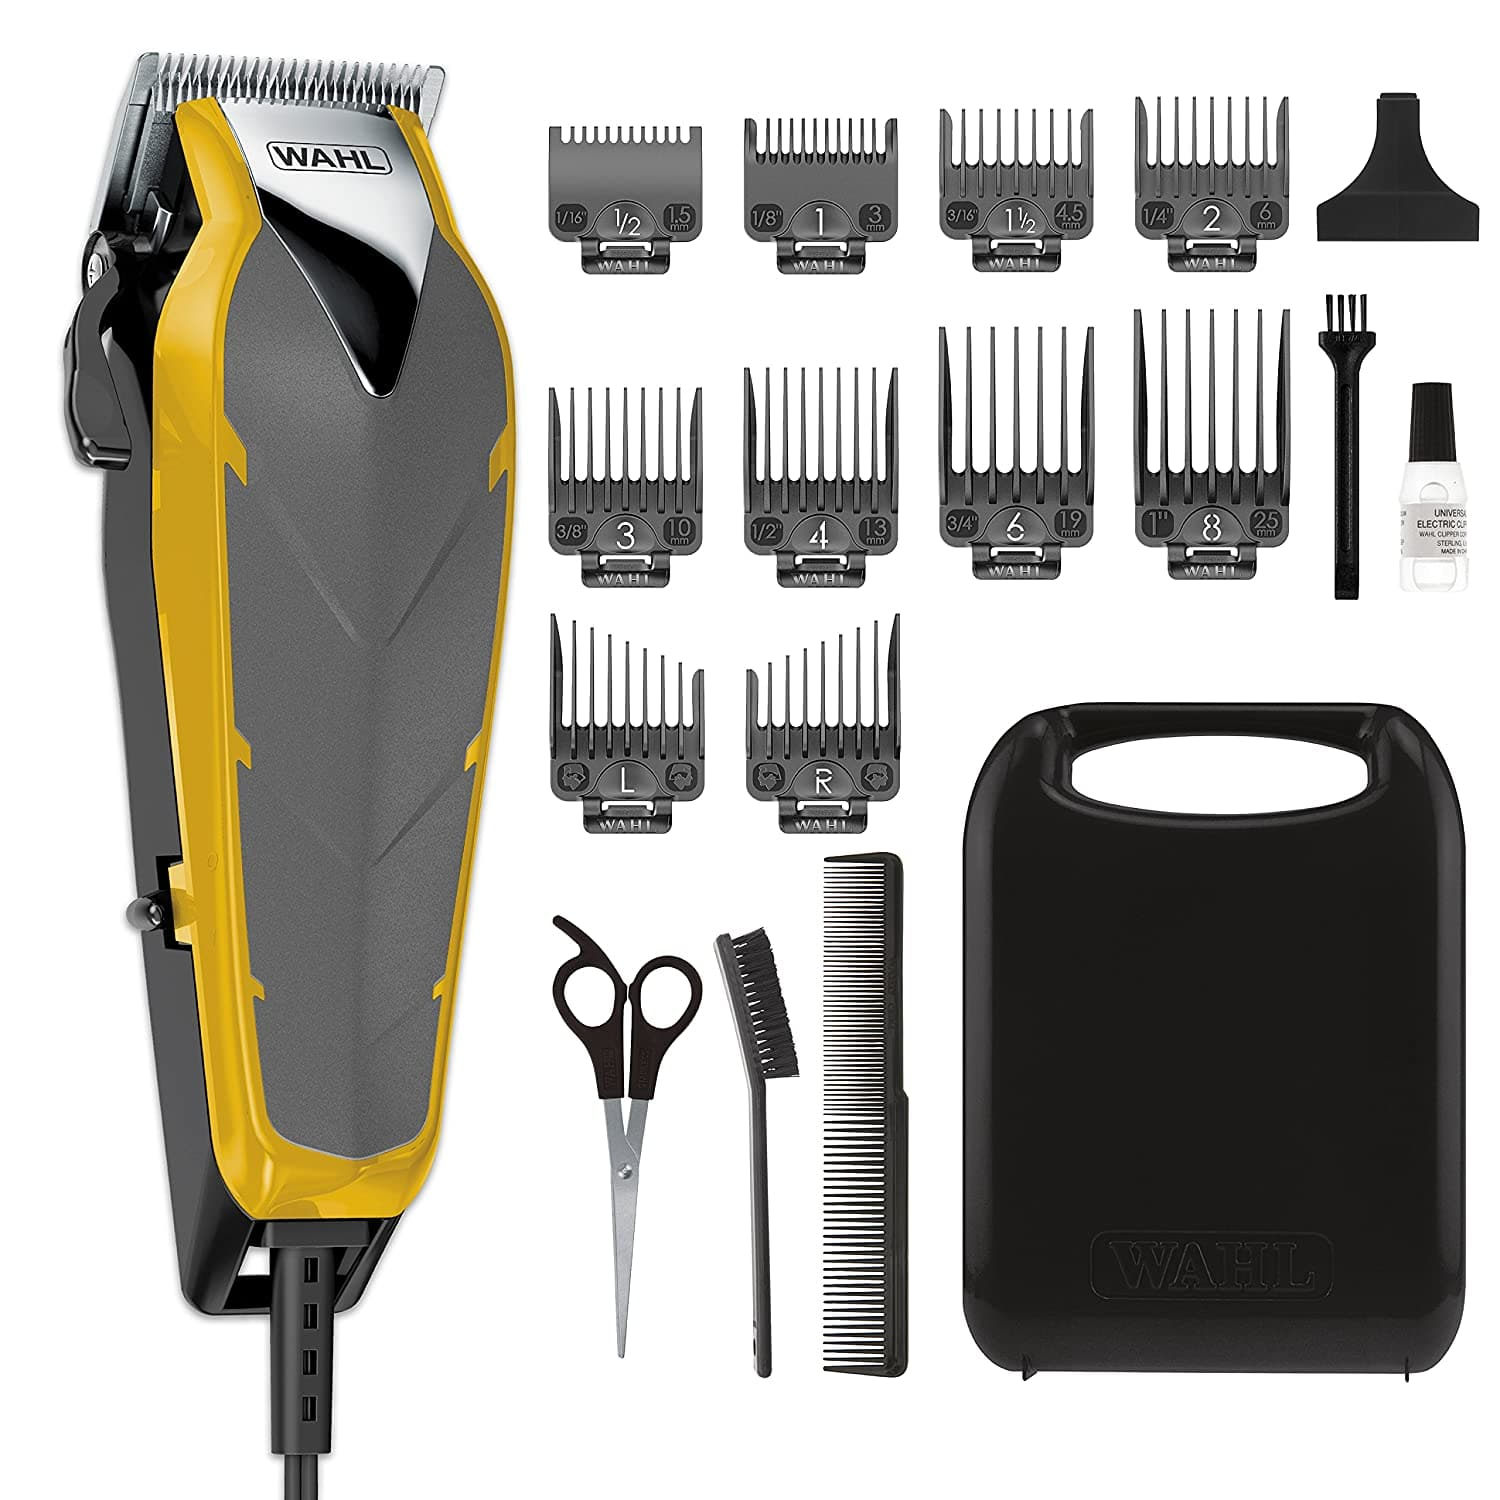 Wahl 79445 Clipper Fade Cut Haircutting Kit Trimming and Personal Grooming Kit for $32 + FSSS